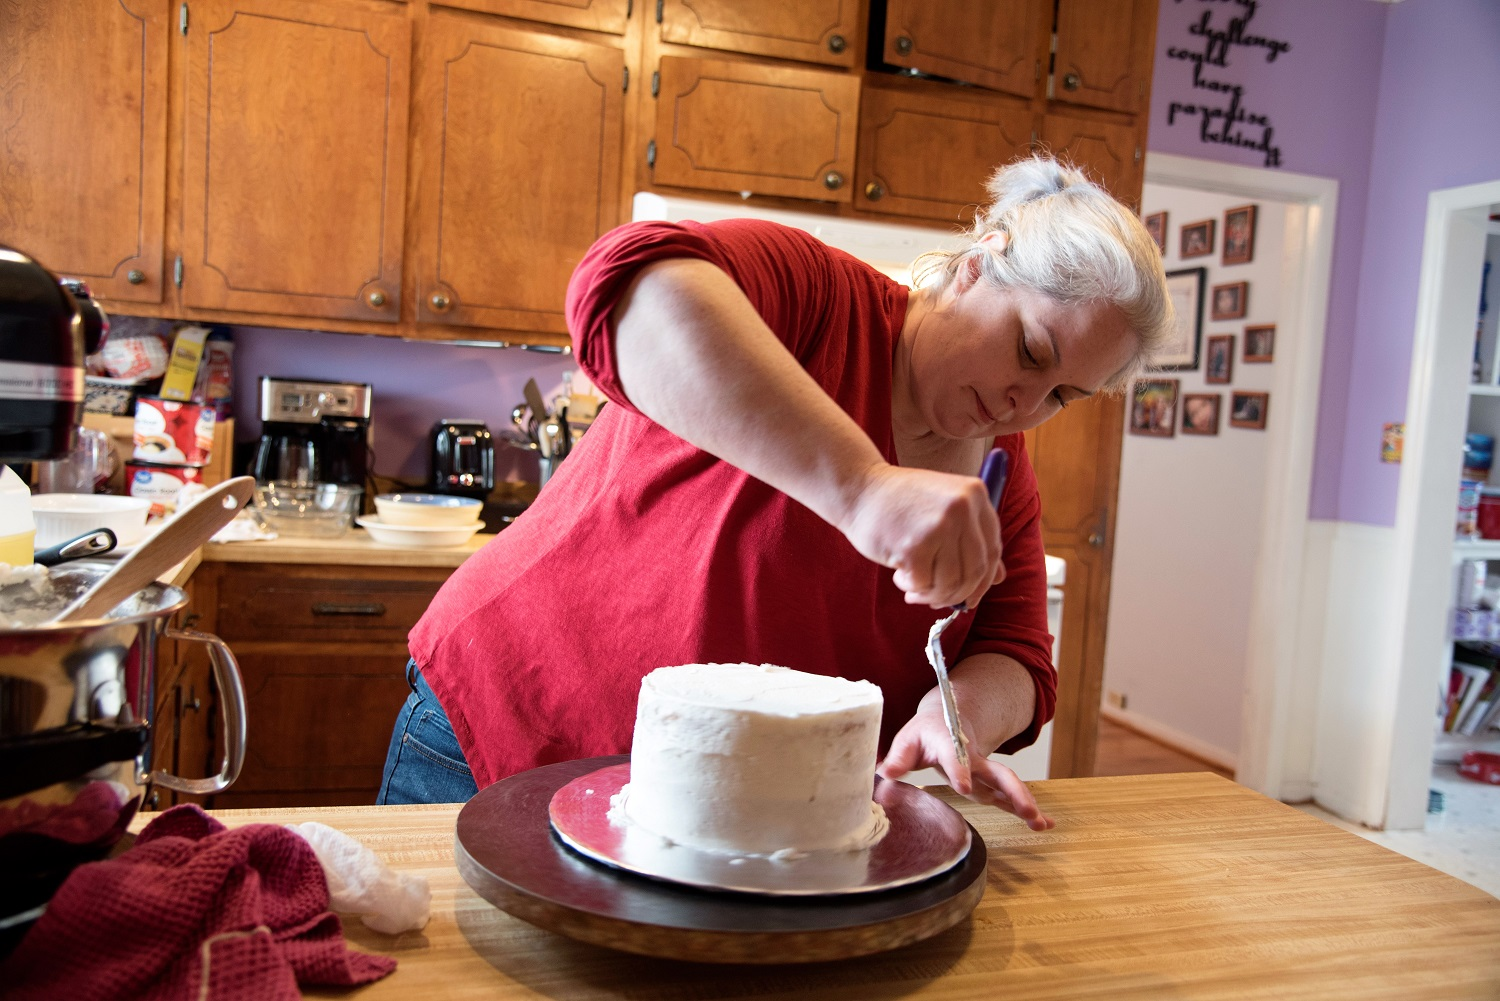 Buckalew works on her latest creation in her Cakeapotamus studio in Opelika. (Brittany Faush / Alabama NewsCenter)